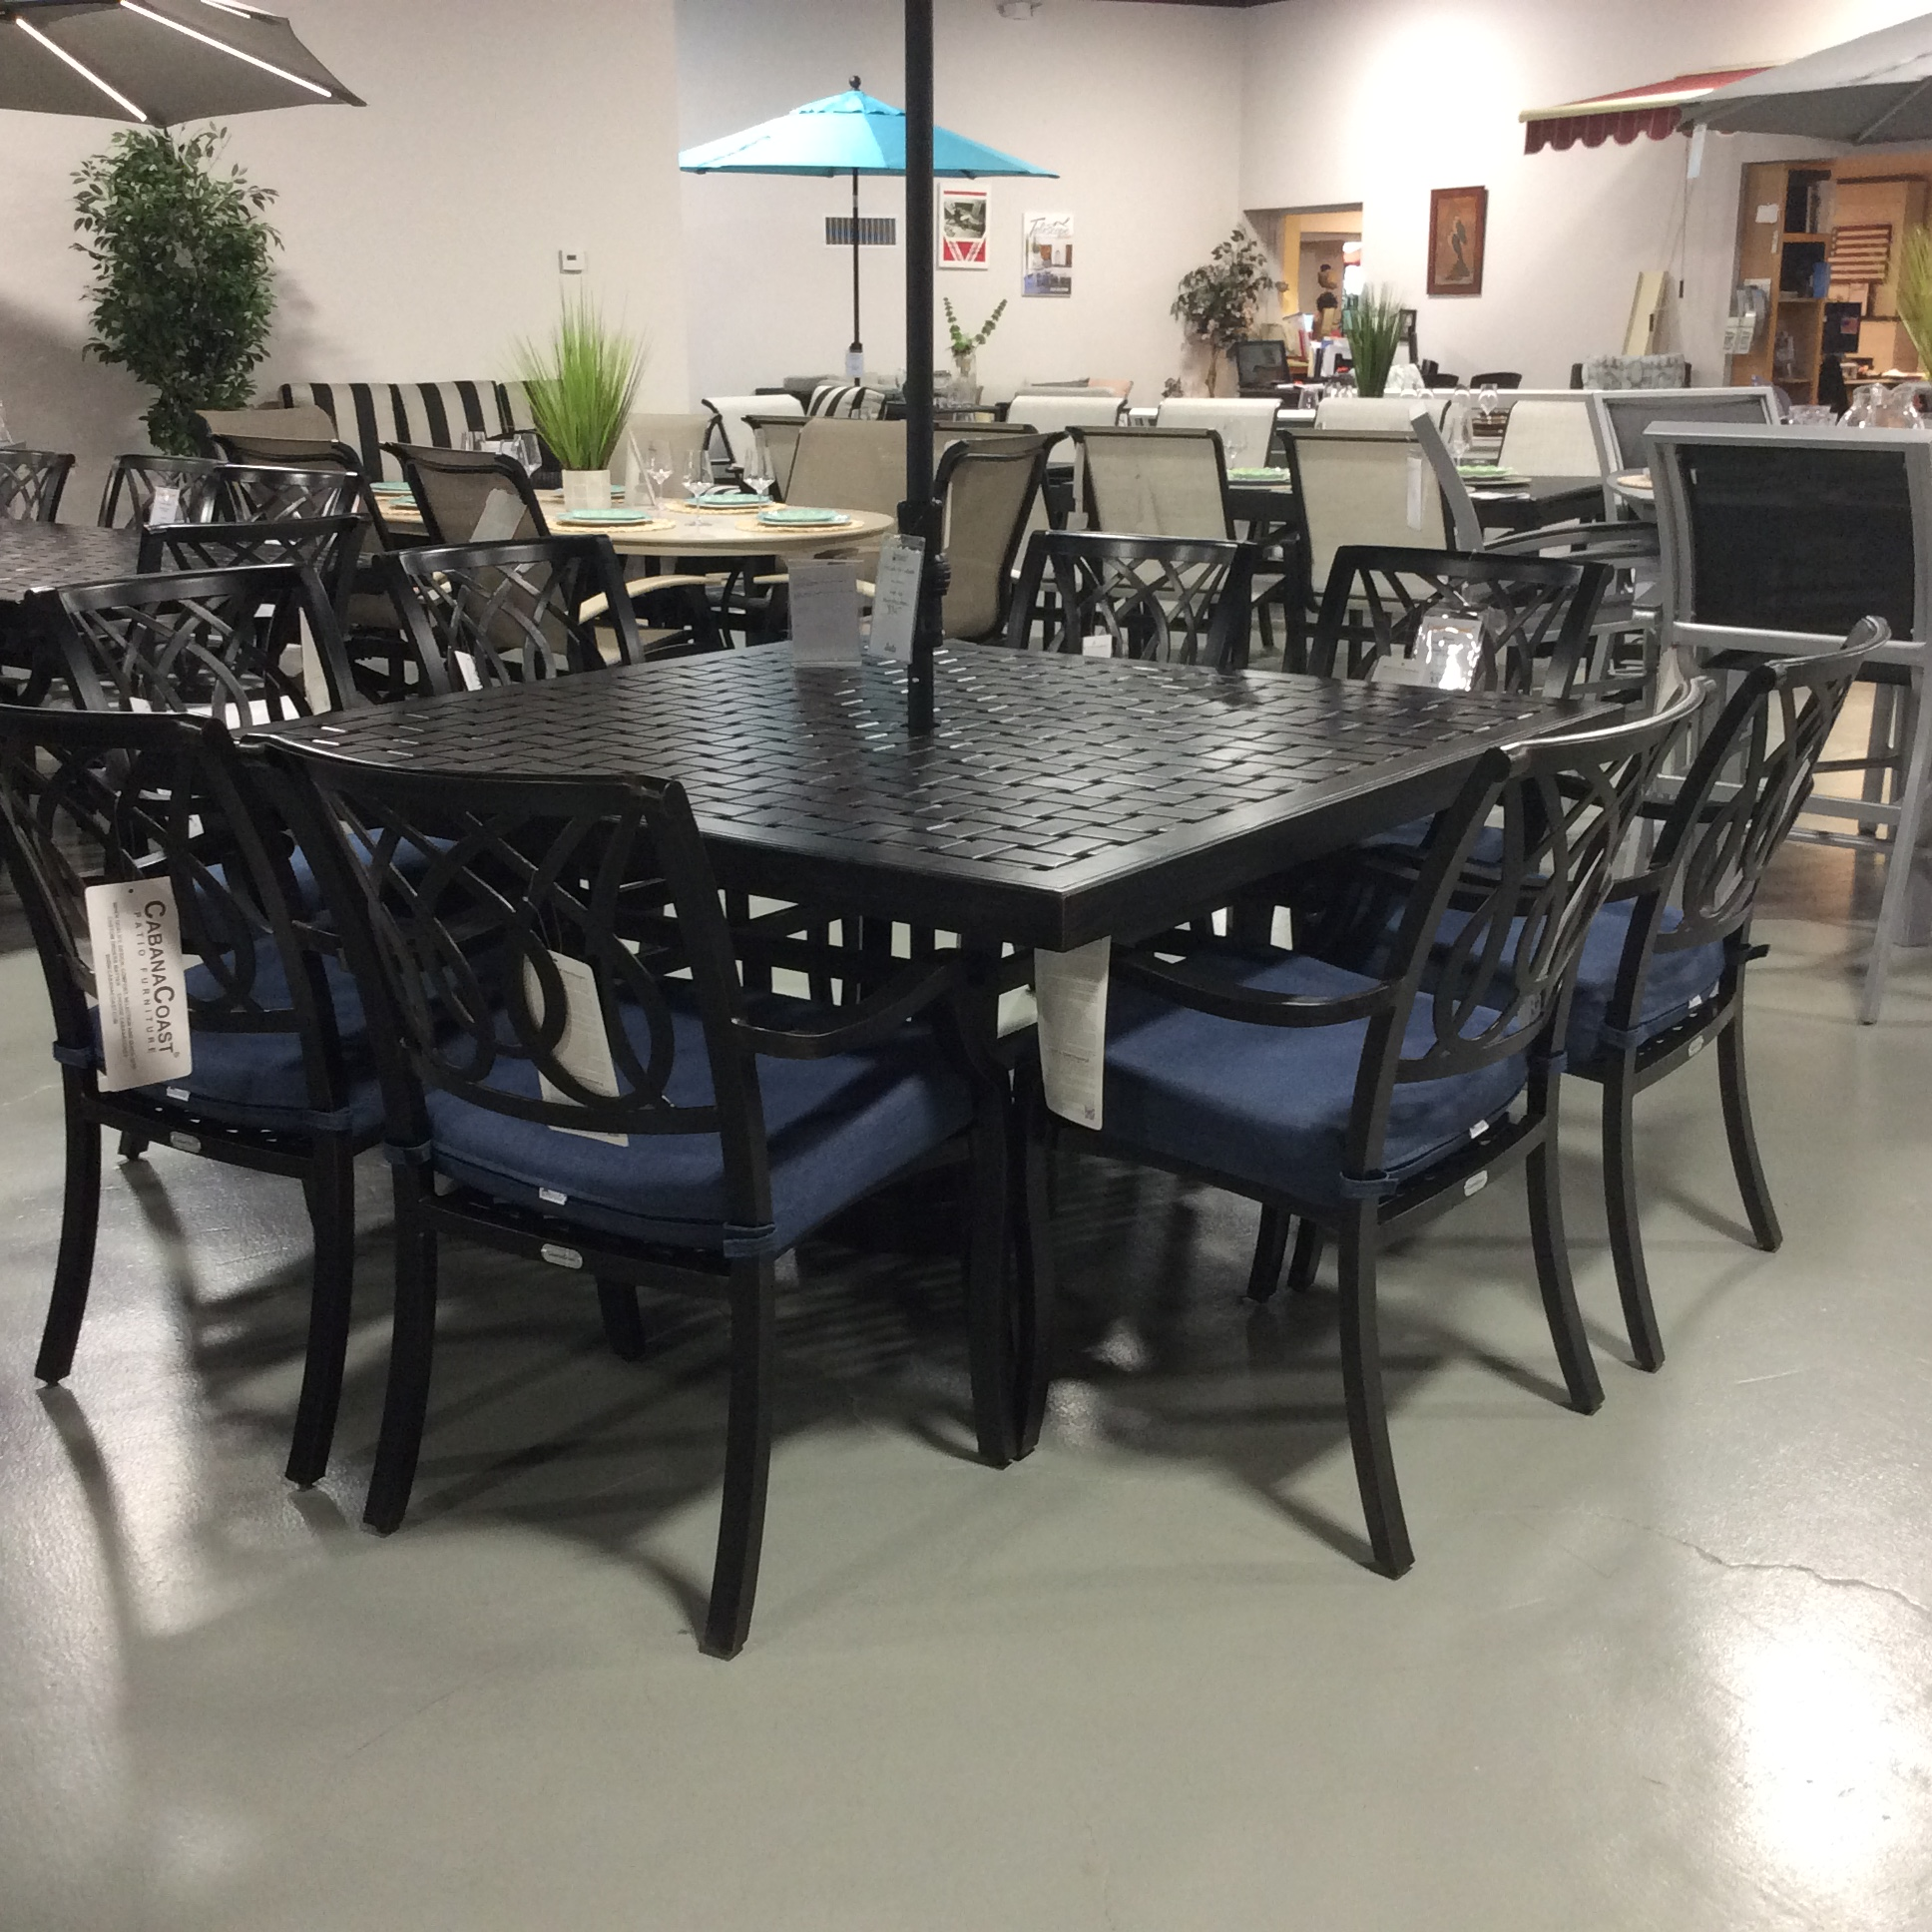 bloom outdoor dining set with square table by cabanacoast